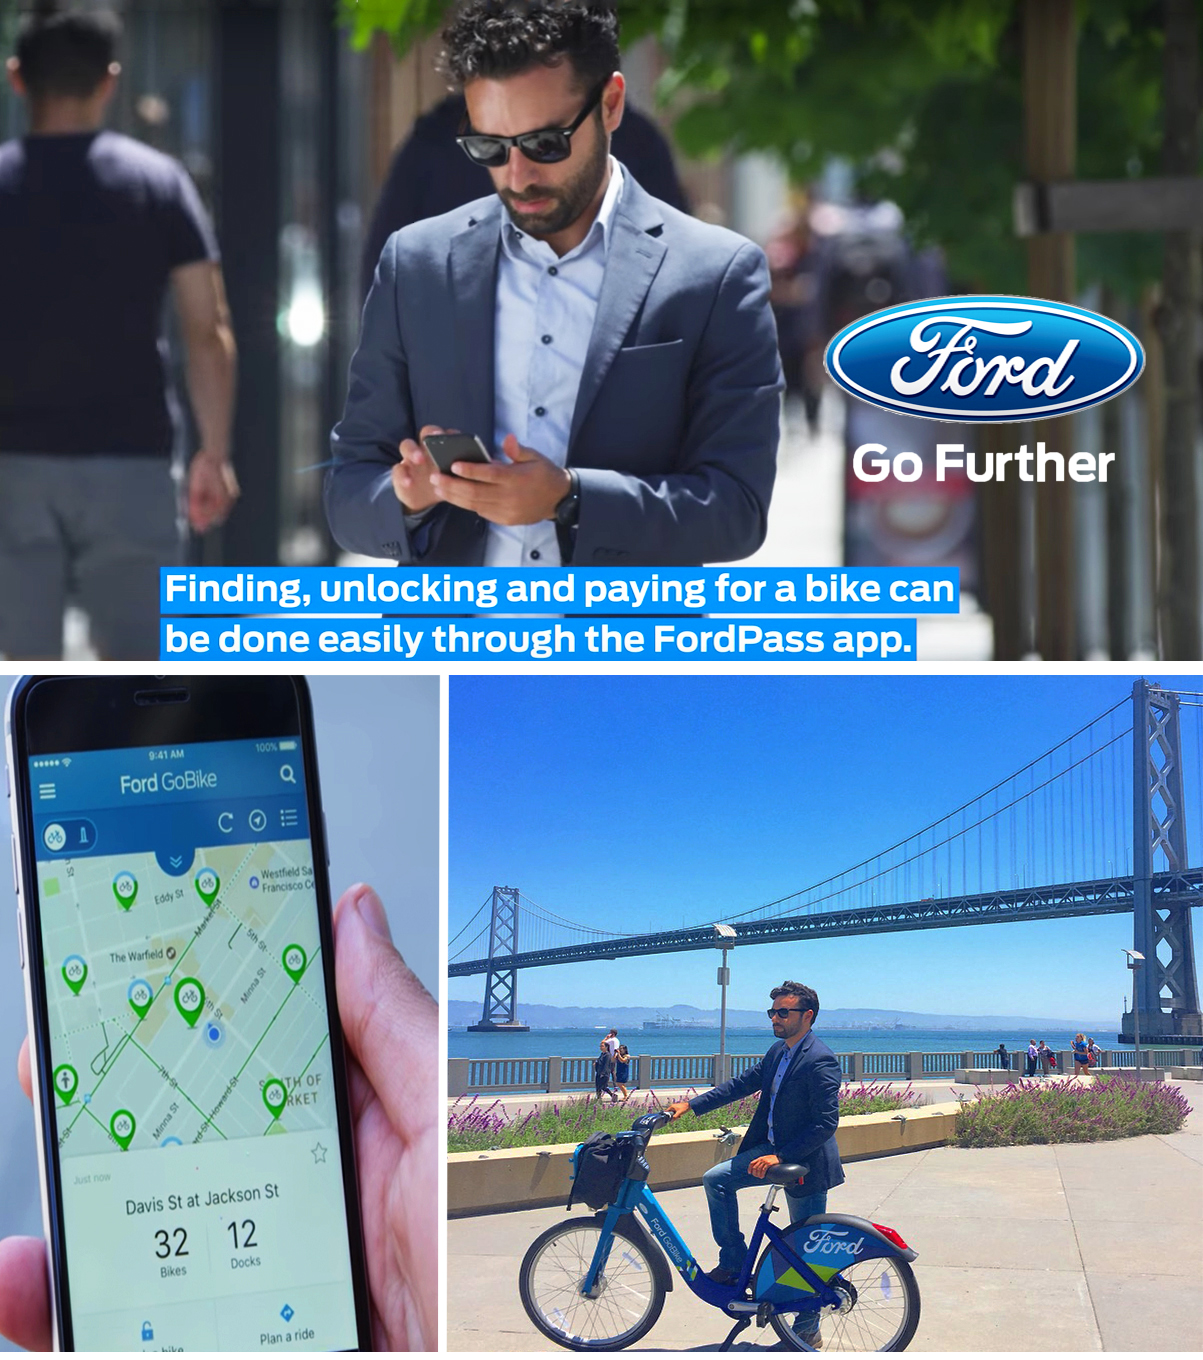 Arsi Nami in Ford GoBikes commercial